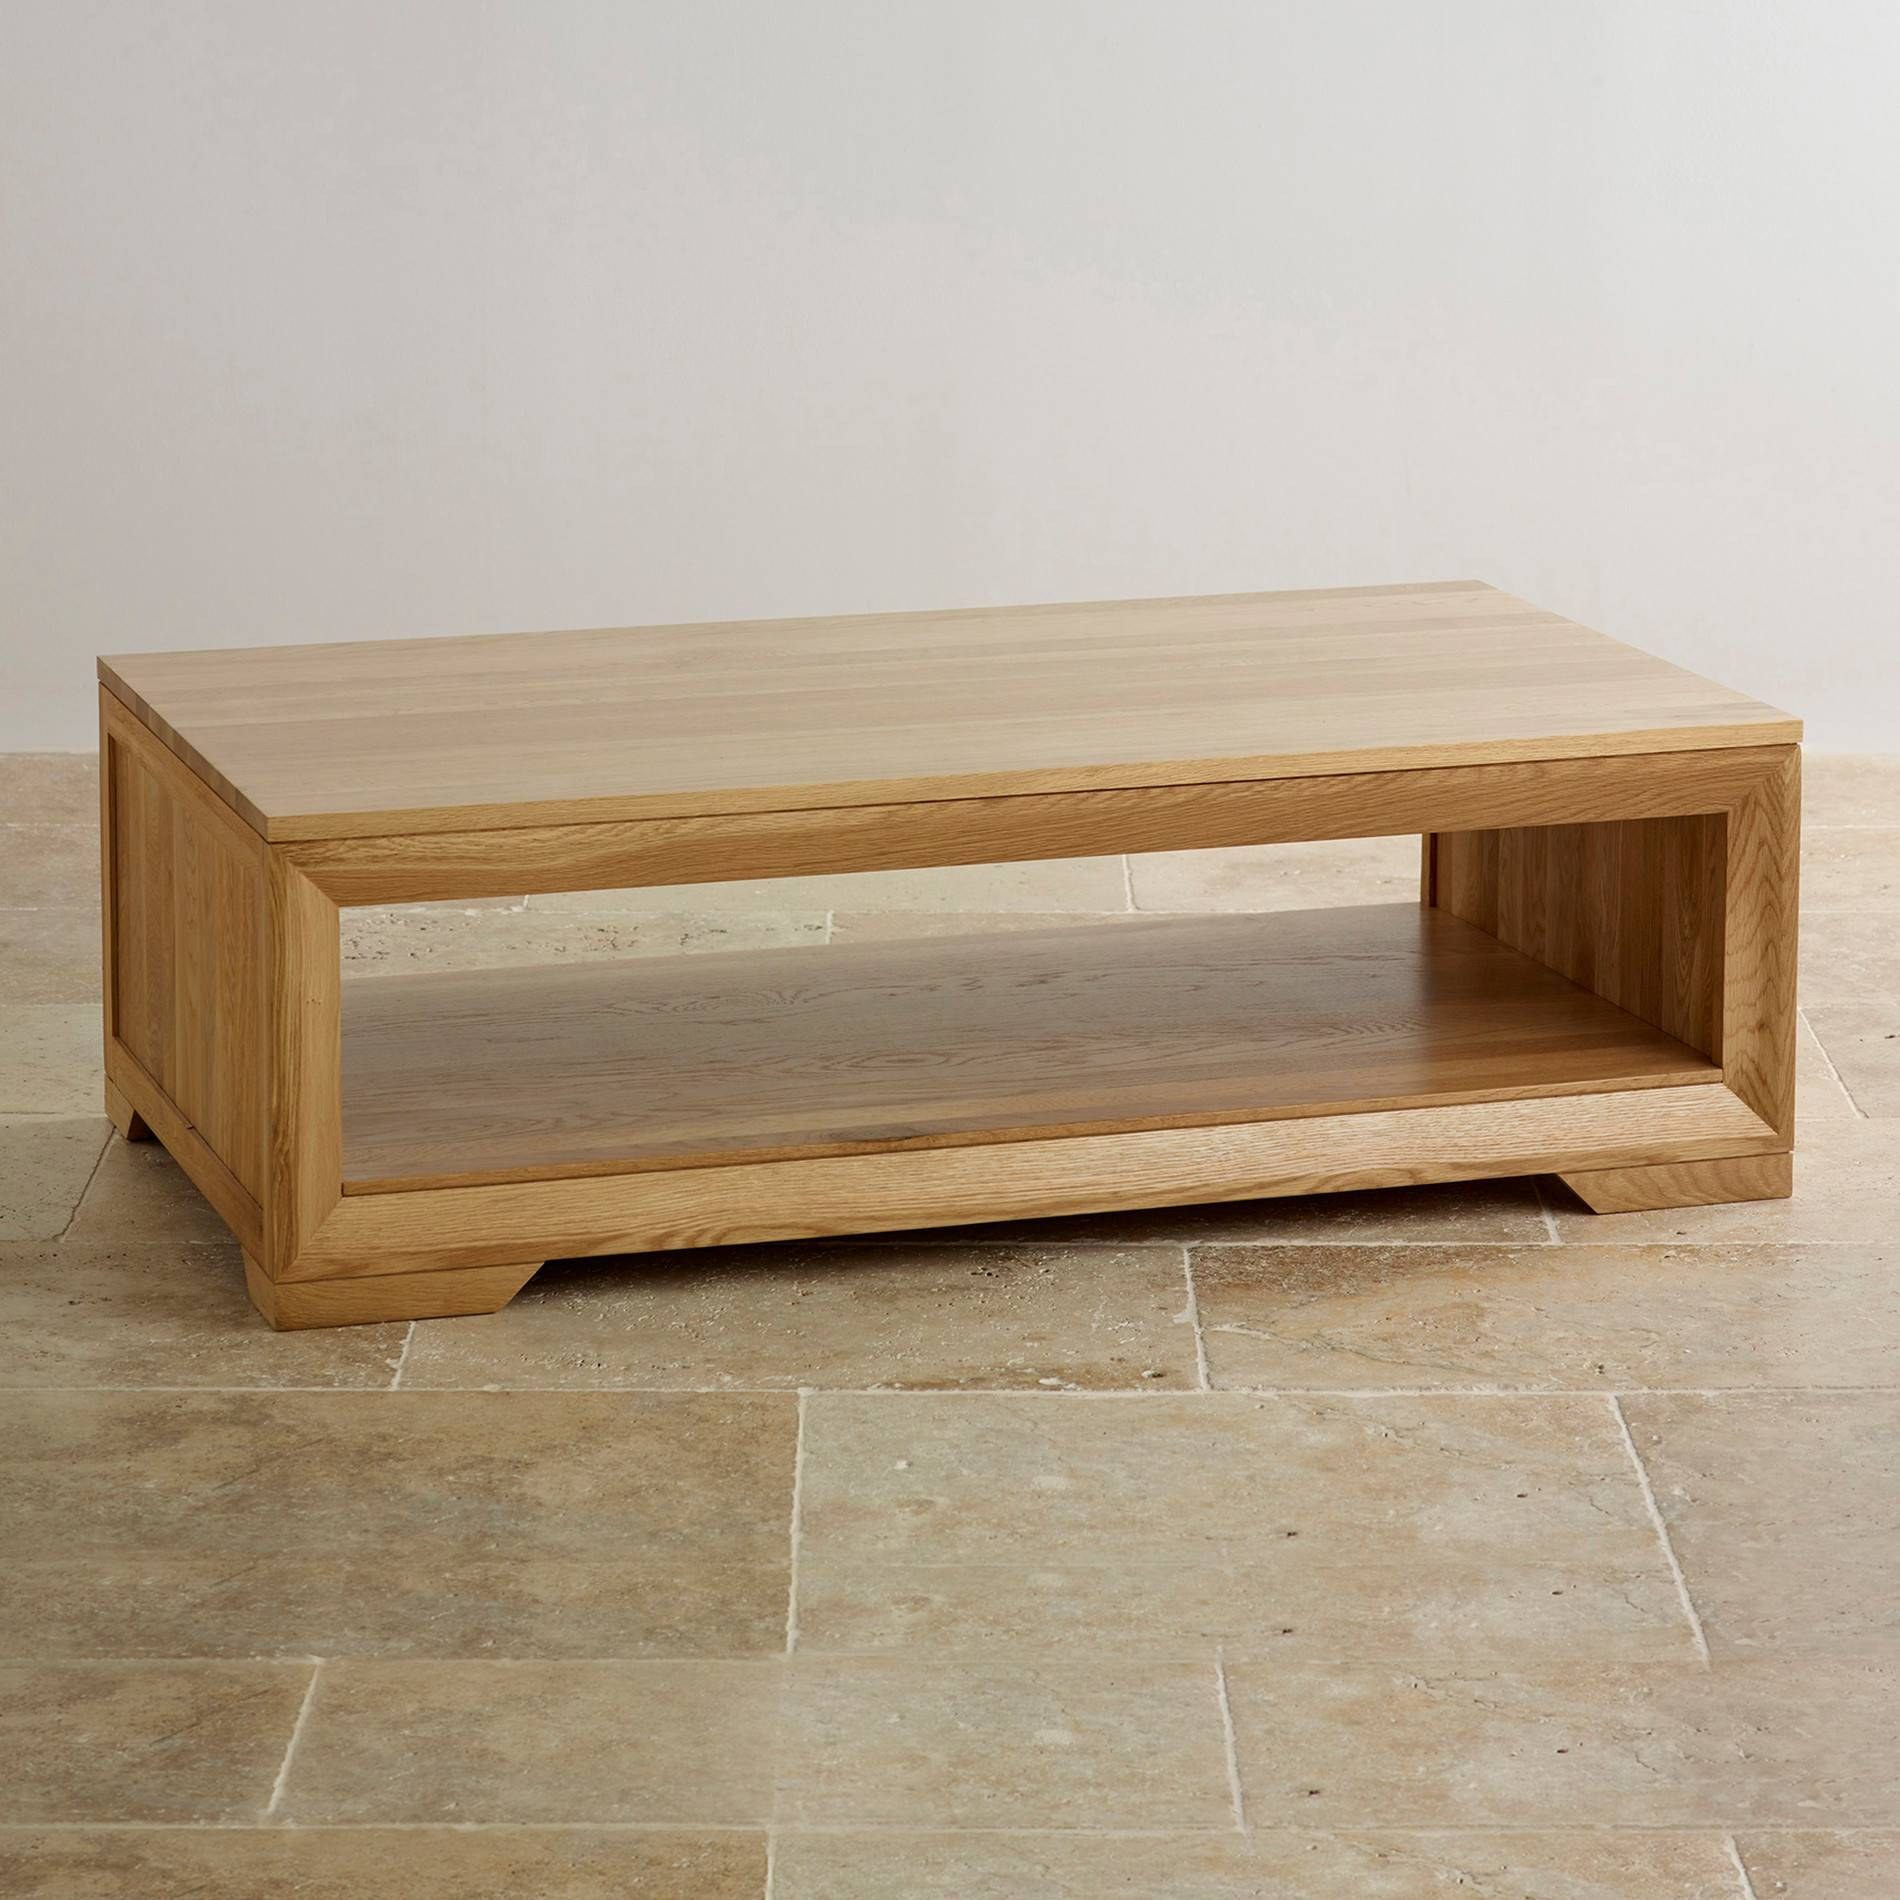 Coffee Tables | Free Delivery Available | Oak Furniture Land intended for Contemporary Oak Coffee Table (Image 3 of 15)